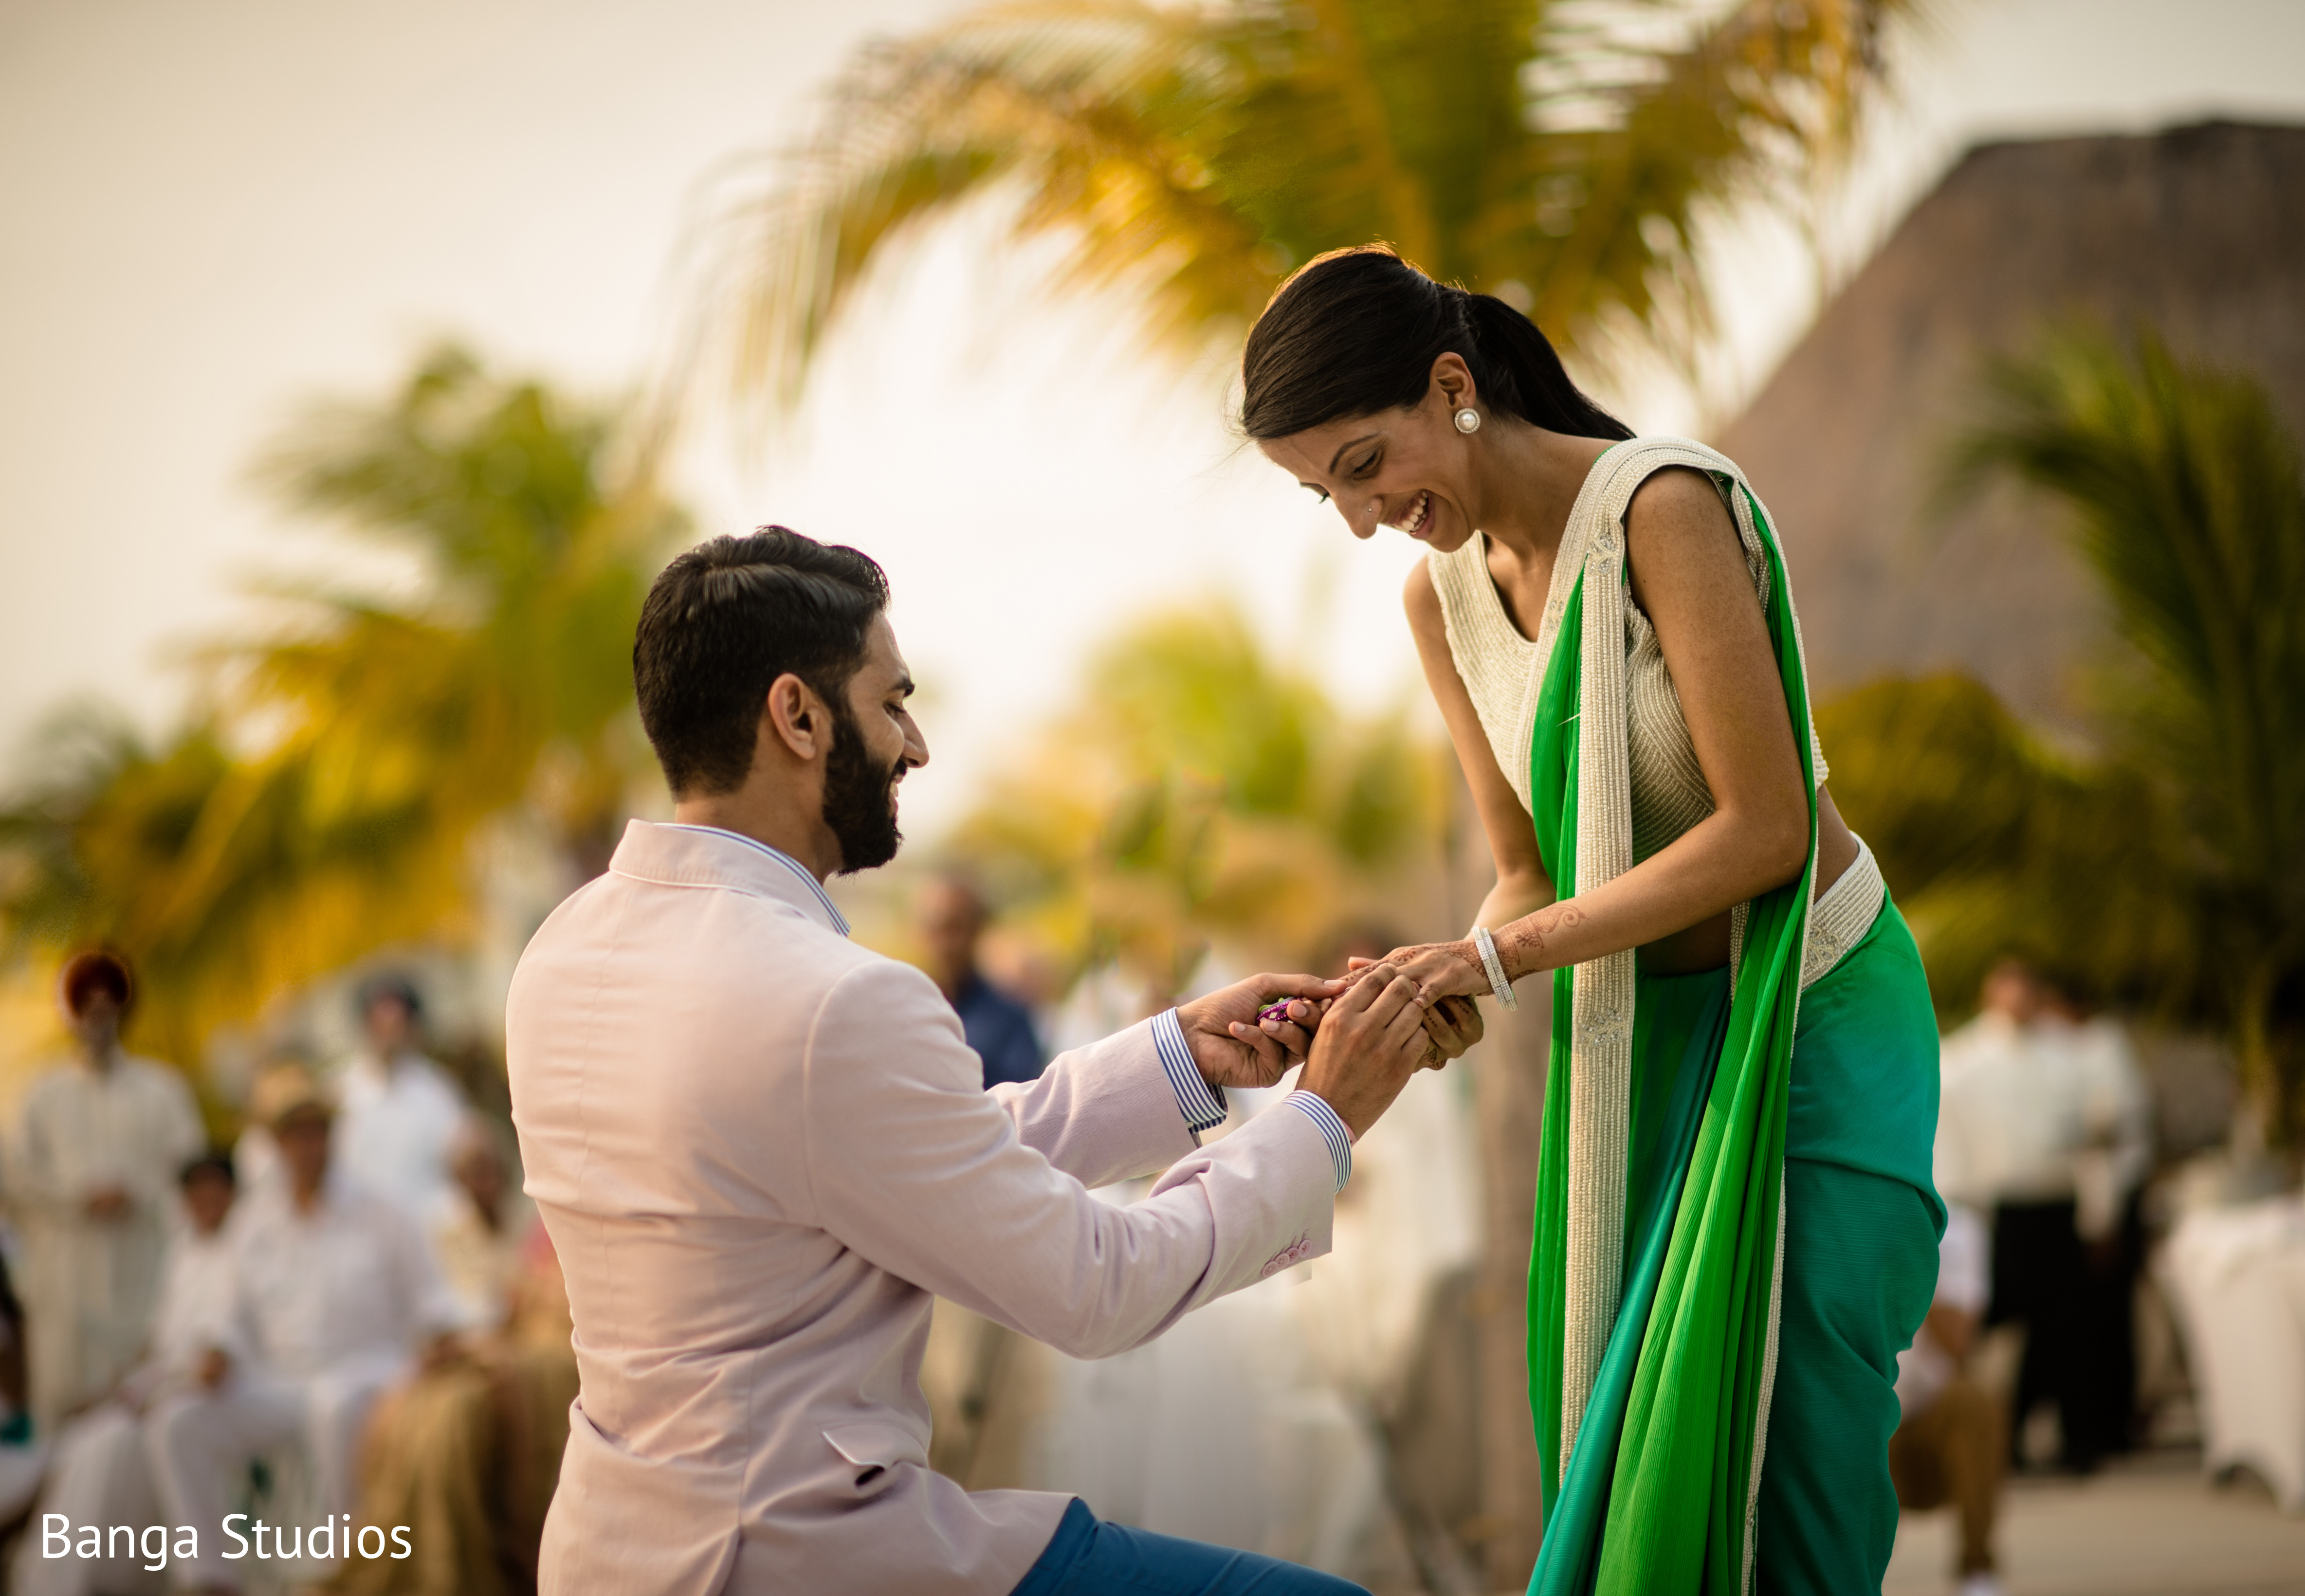 Cute Wallpapers Of Punjabi Couples Ring Ceremony Photo 24359